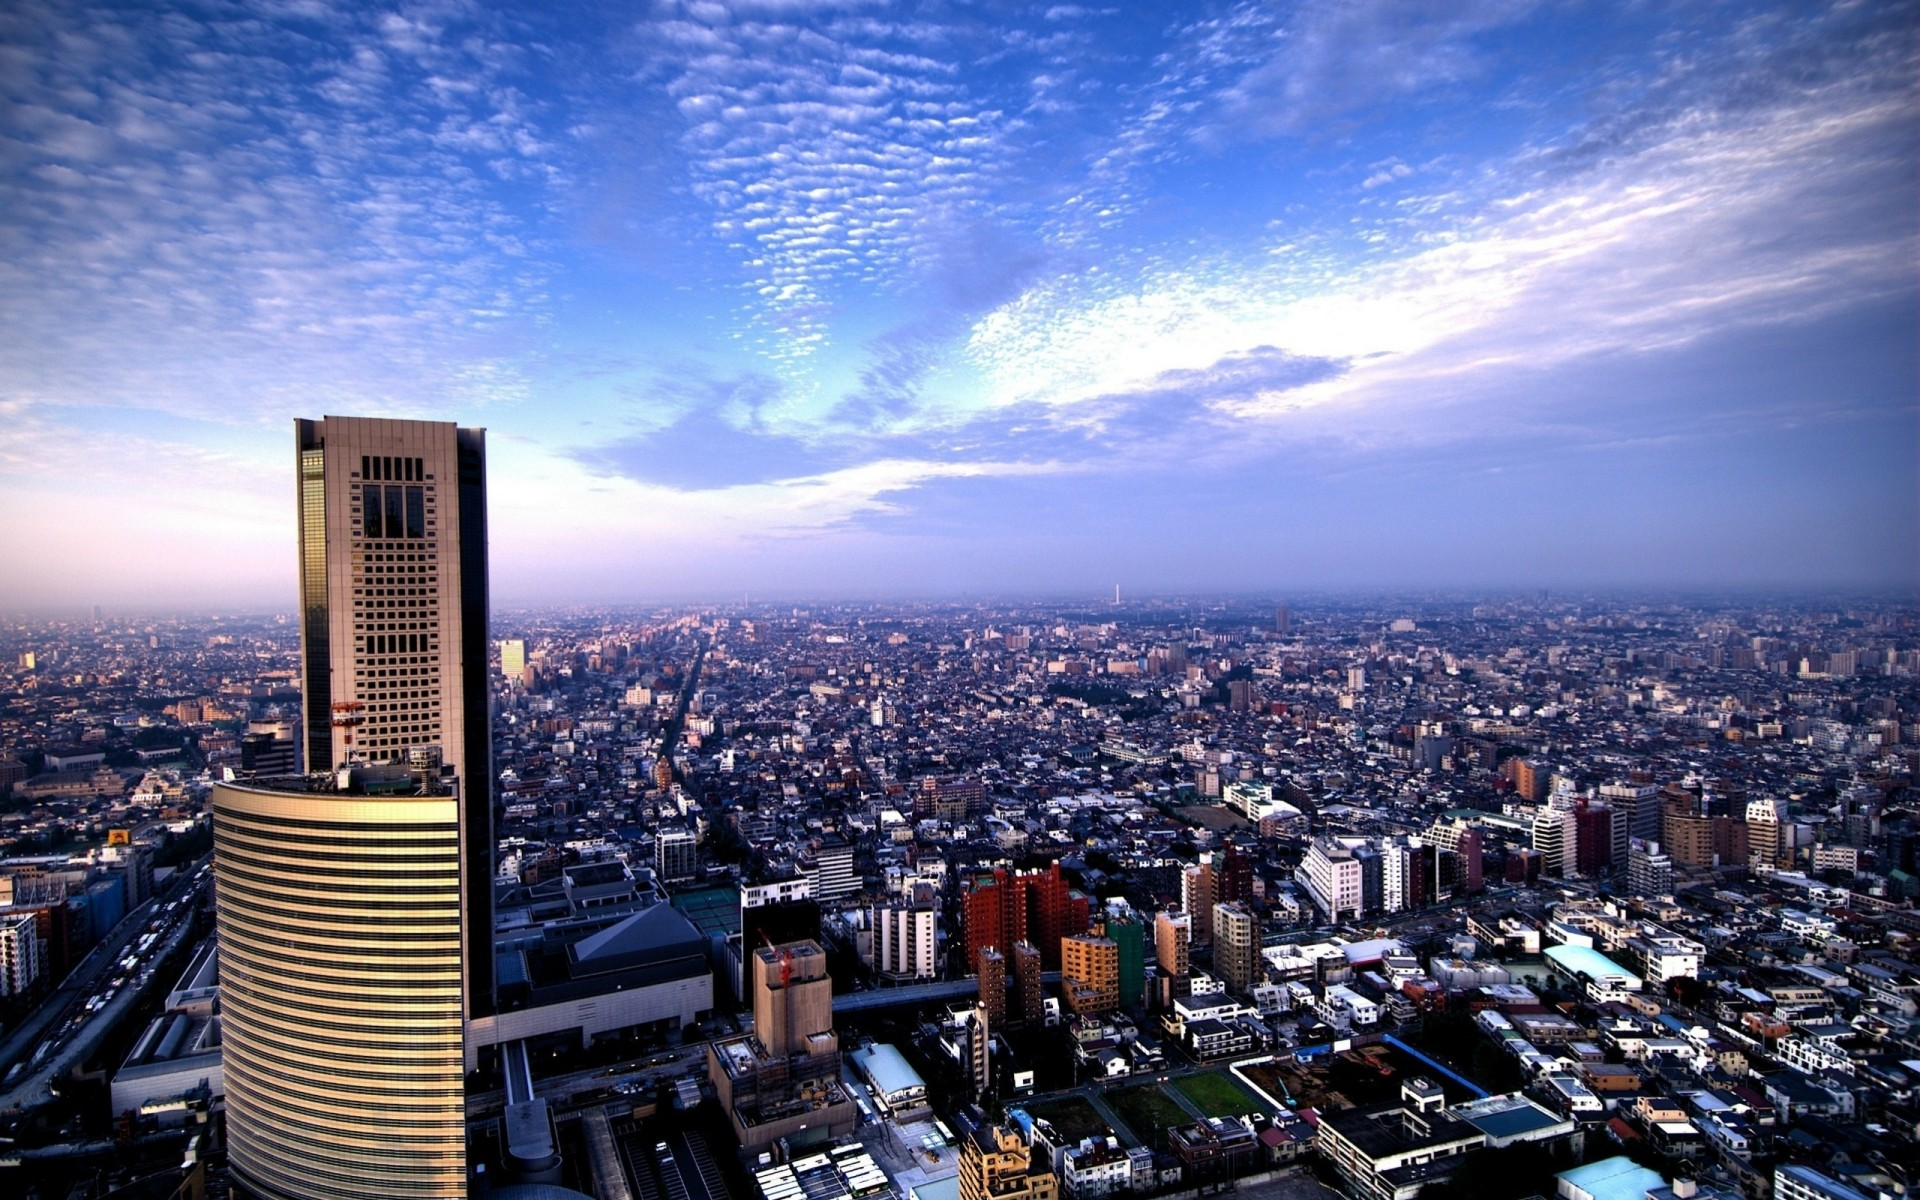 Sky city tokyo pictures